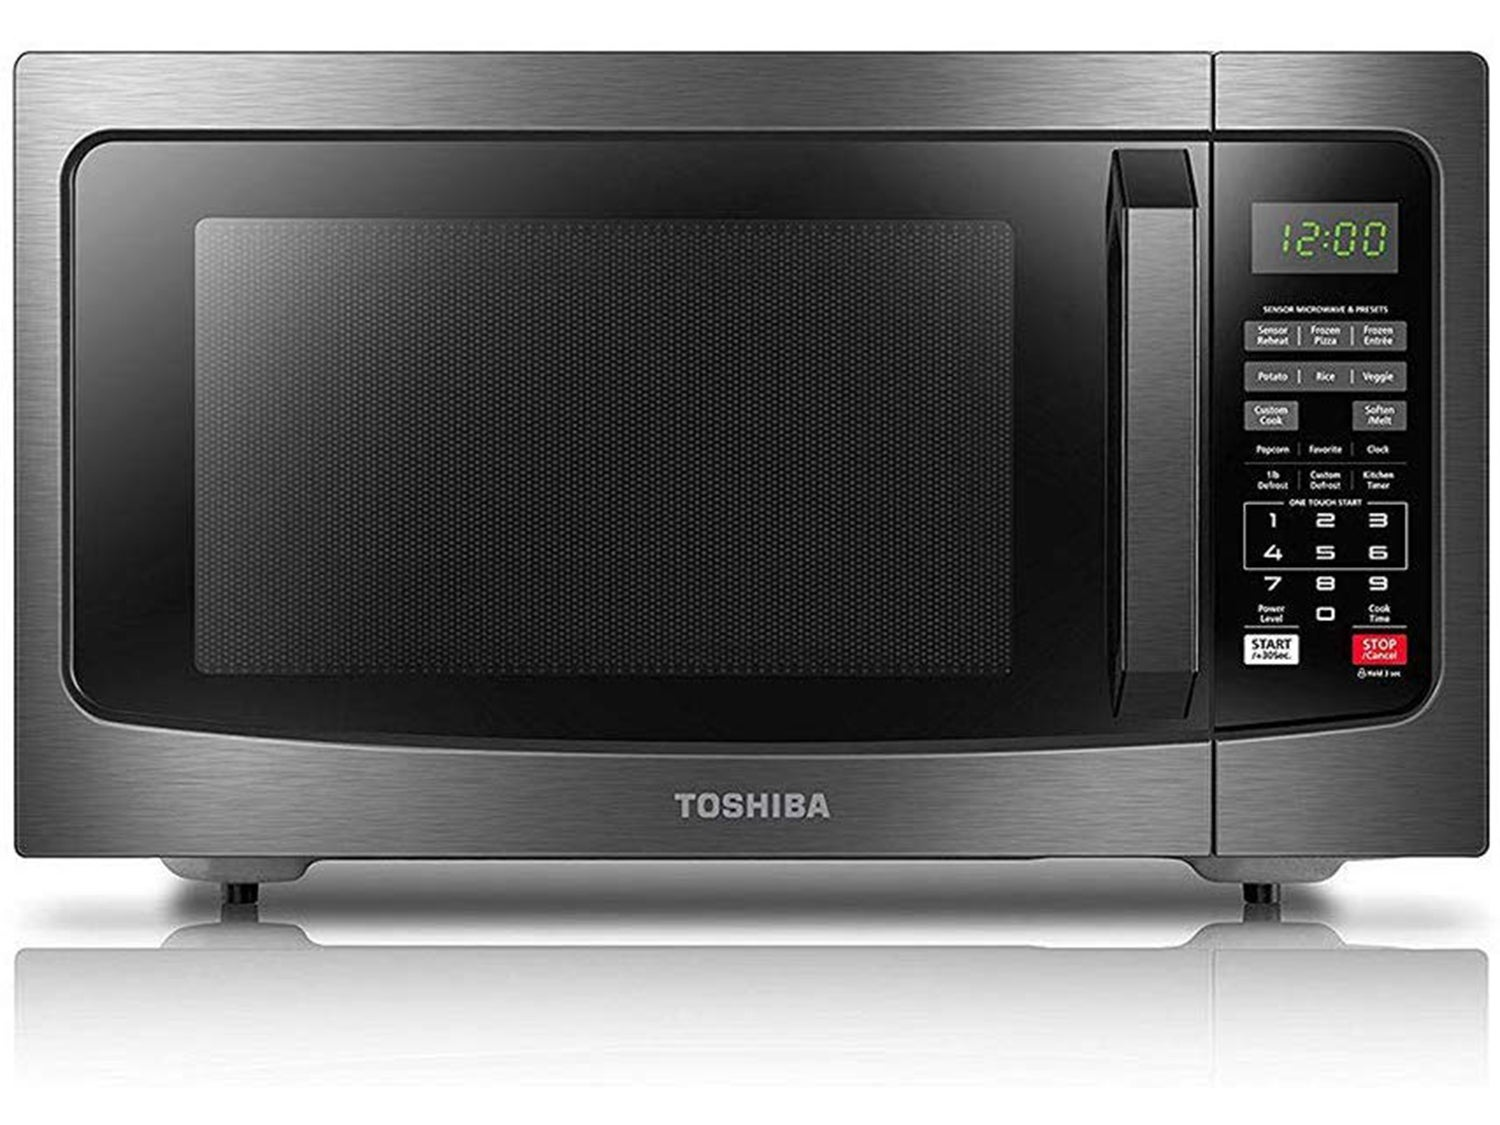 Toshiba Microwave Oven with Smart Sensor, Easy Clean Interior, ECO Mode and Sound On/Off, 1.2 Cu.ft, Black Stainless Steel